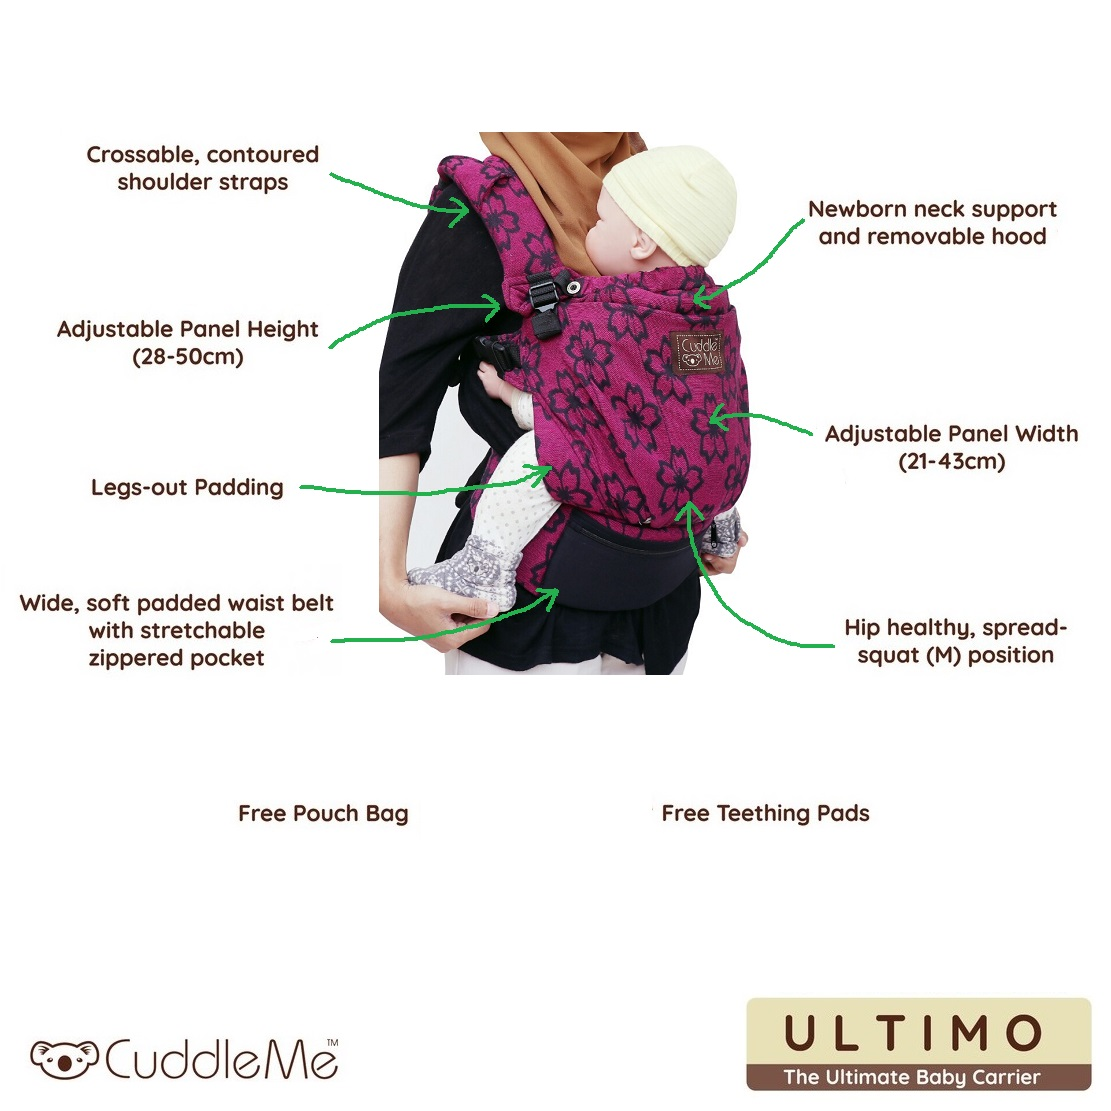 CuddleMe Ultimo Woven Baby Carrier (Cover)